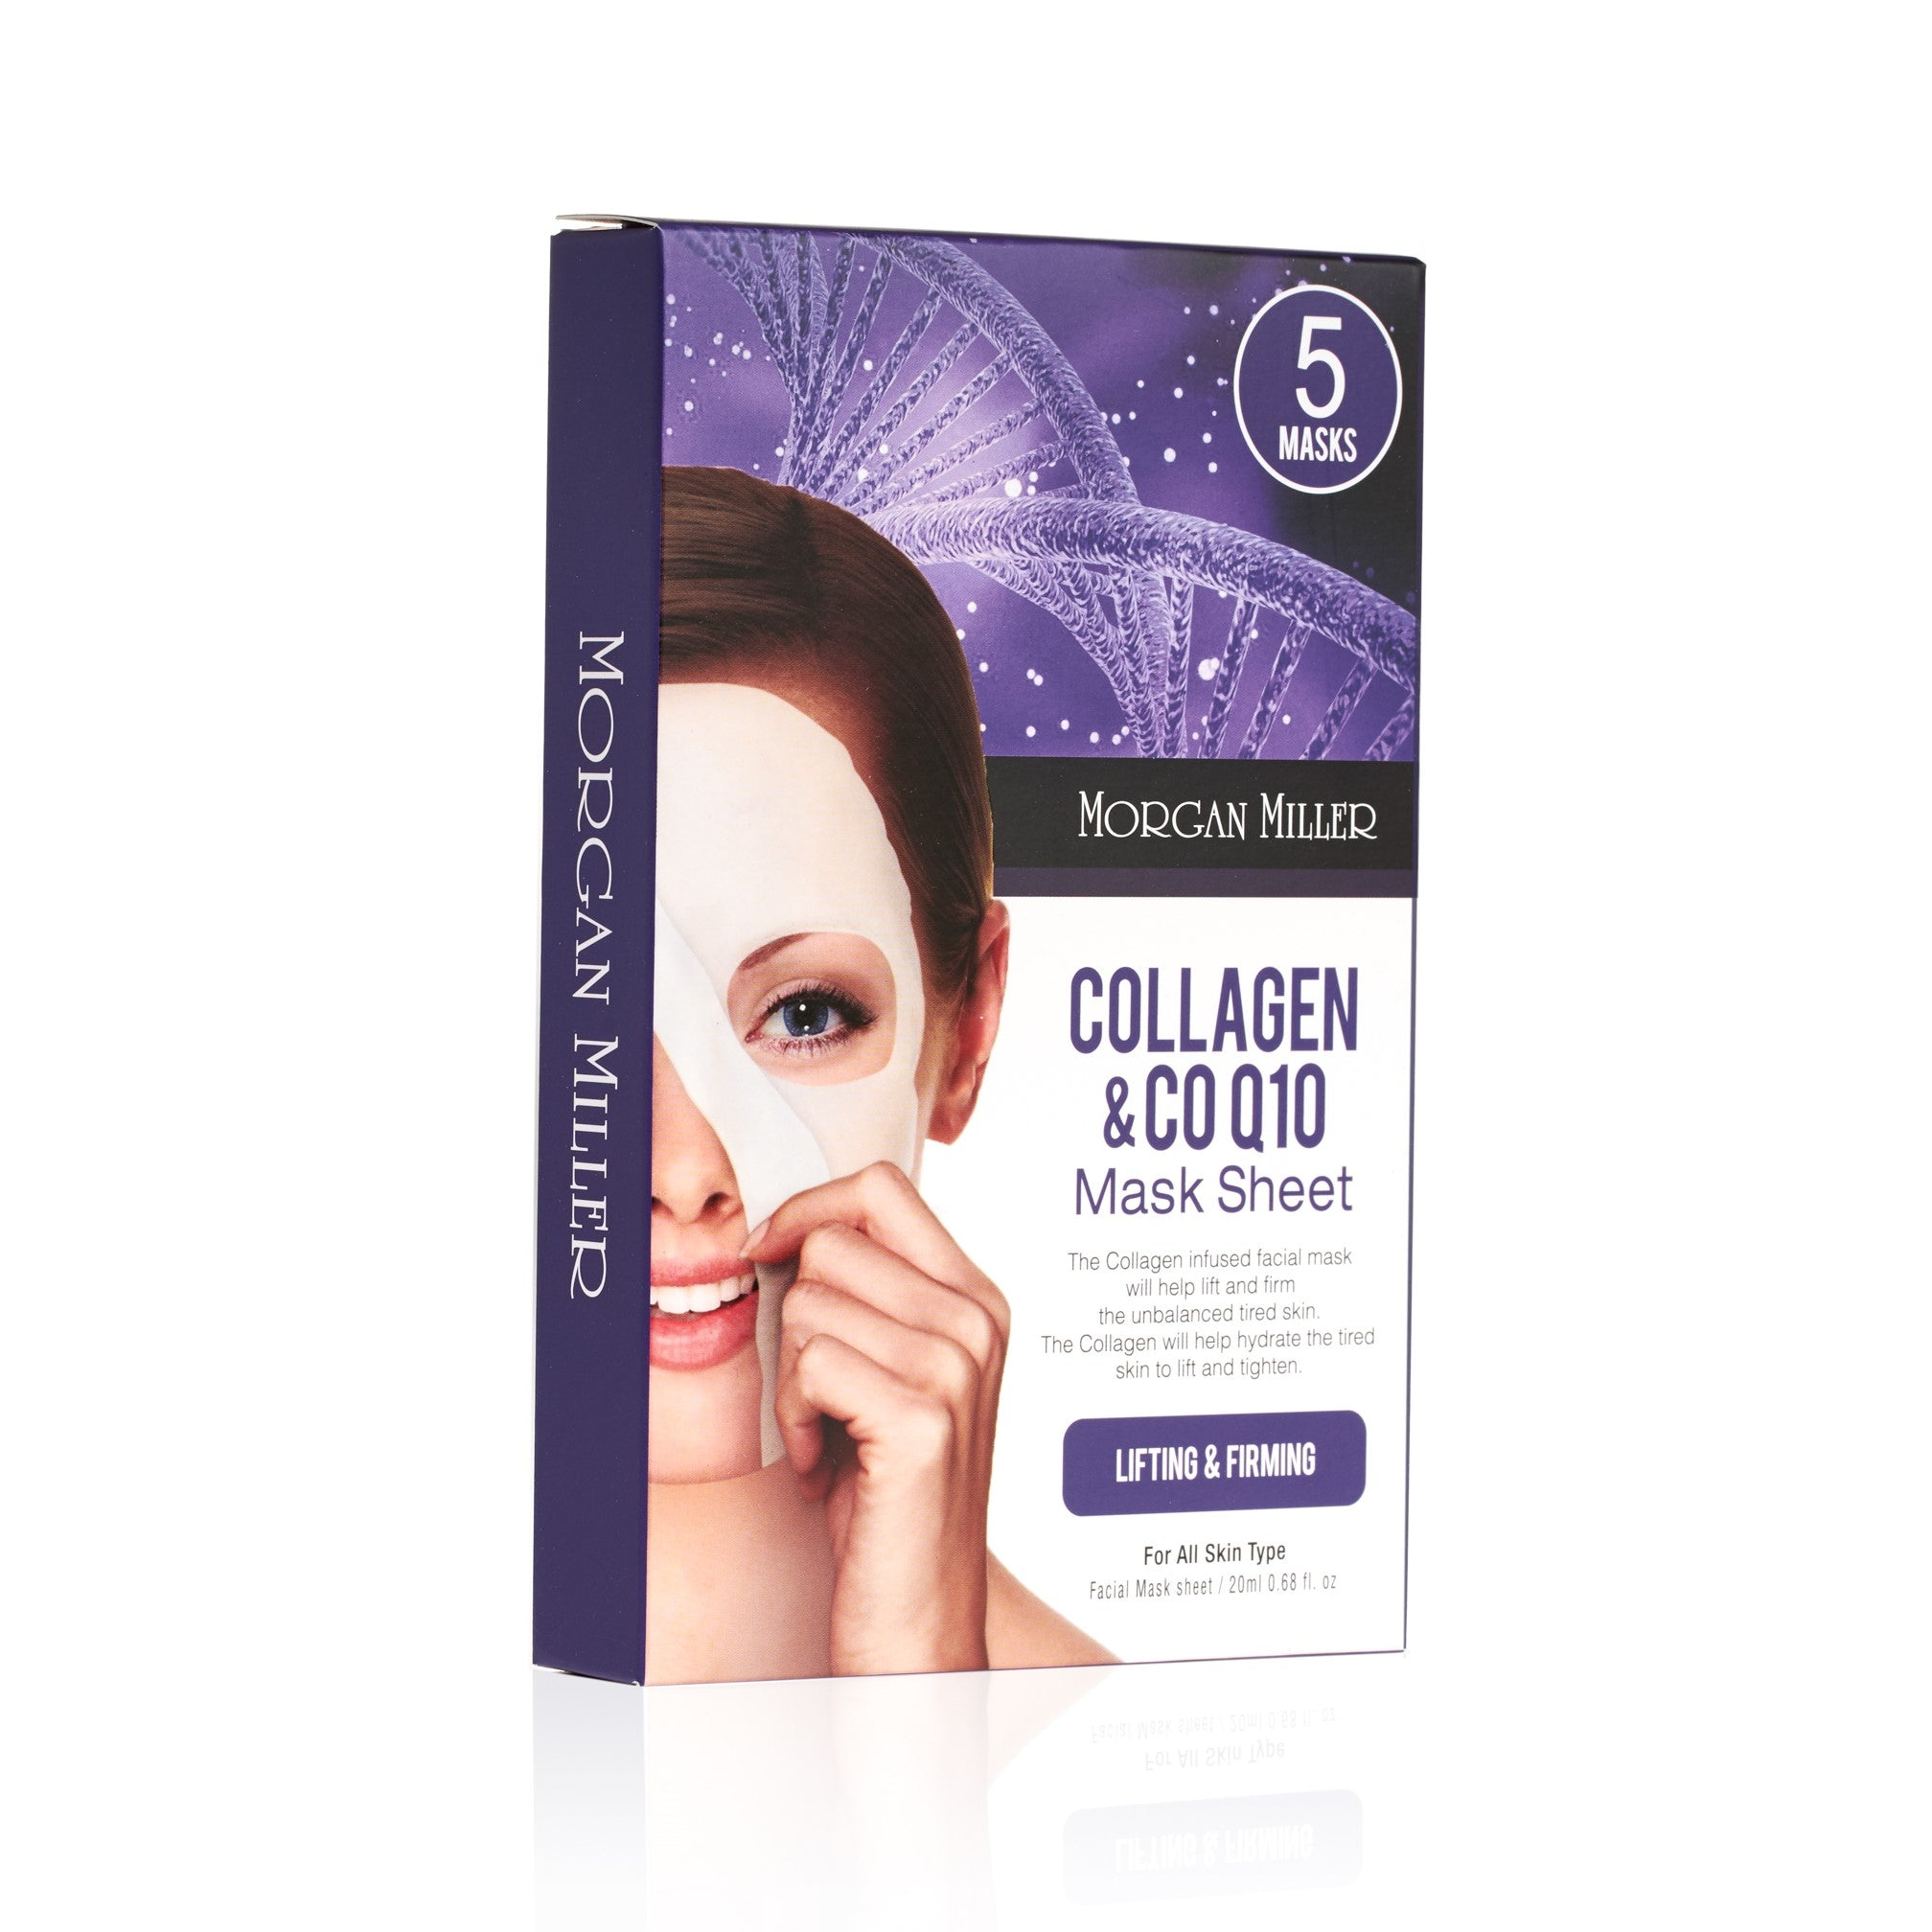 Morgan Miller Collagen Sheet Mask Packaging